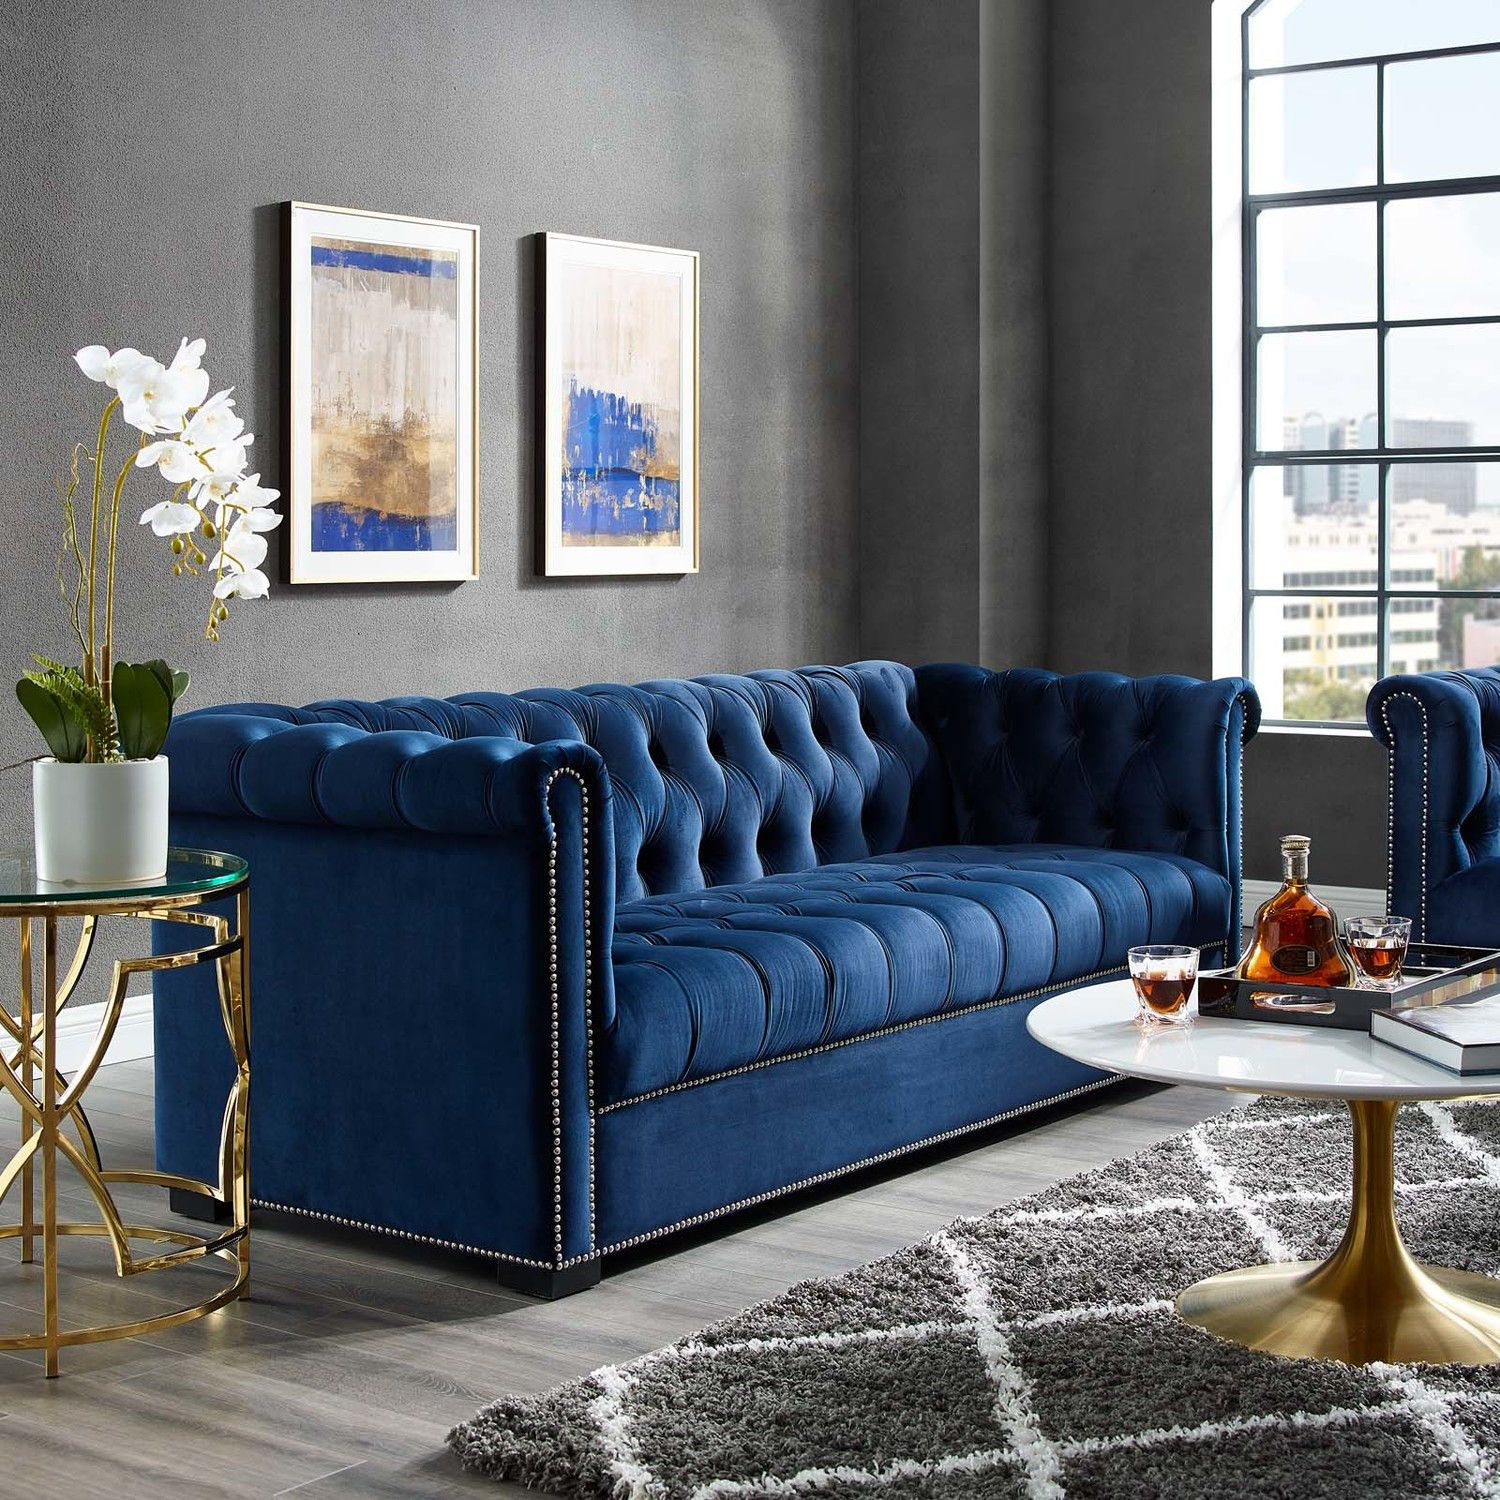 Heritage Midnight Blue Sofa Eei 3064 Mid Modway Furniture Fabric Sofas In 2021 Blue Sofa Living Blue Living Room Decor Blue Sofas Living Room